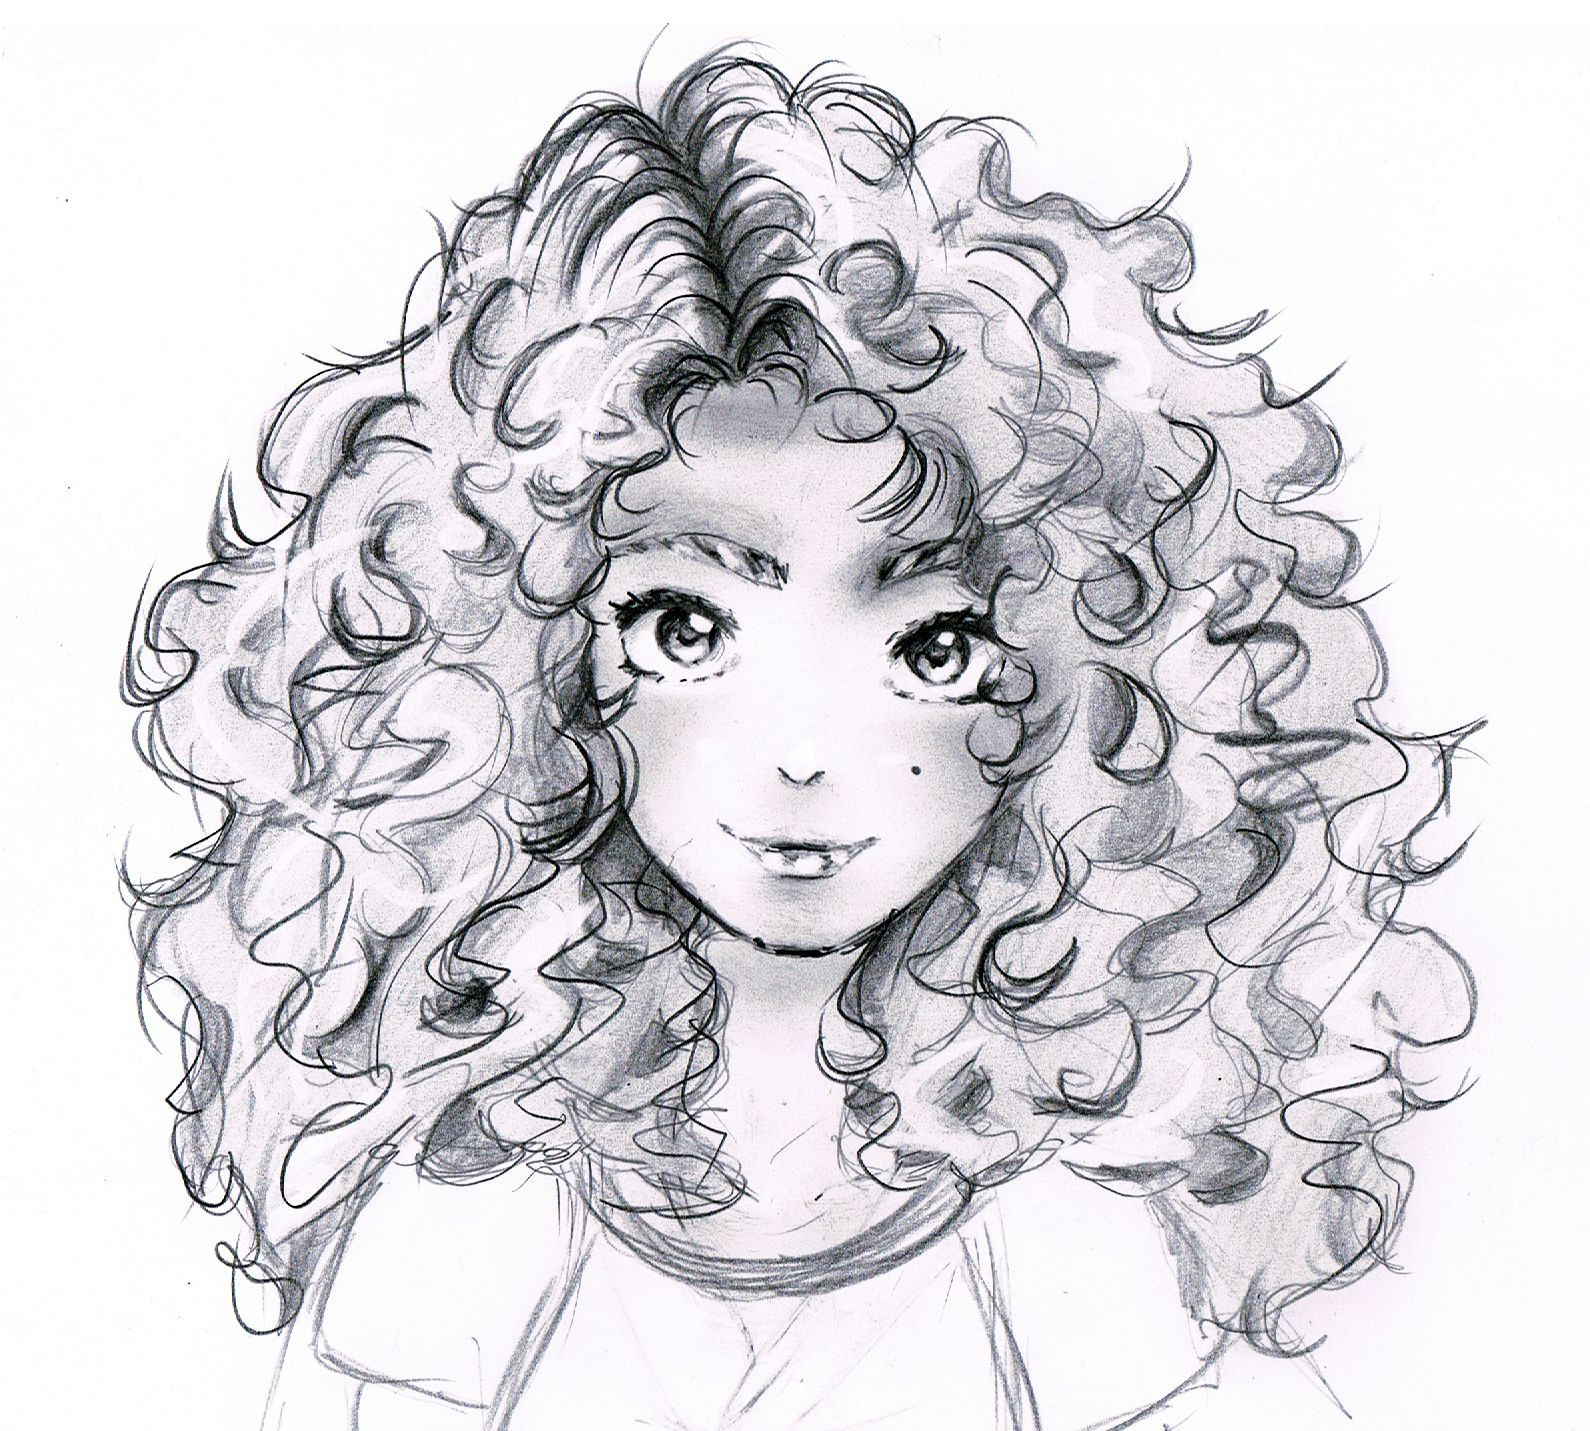 Curly Hair Curly Hair Girl Anime Manga Pencil Scetch Drawing Art Girl Drawing Sketches Manga Hair Cartoon Drawings